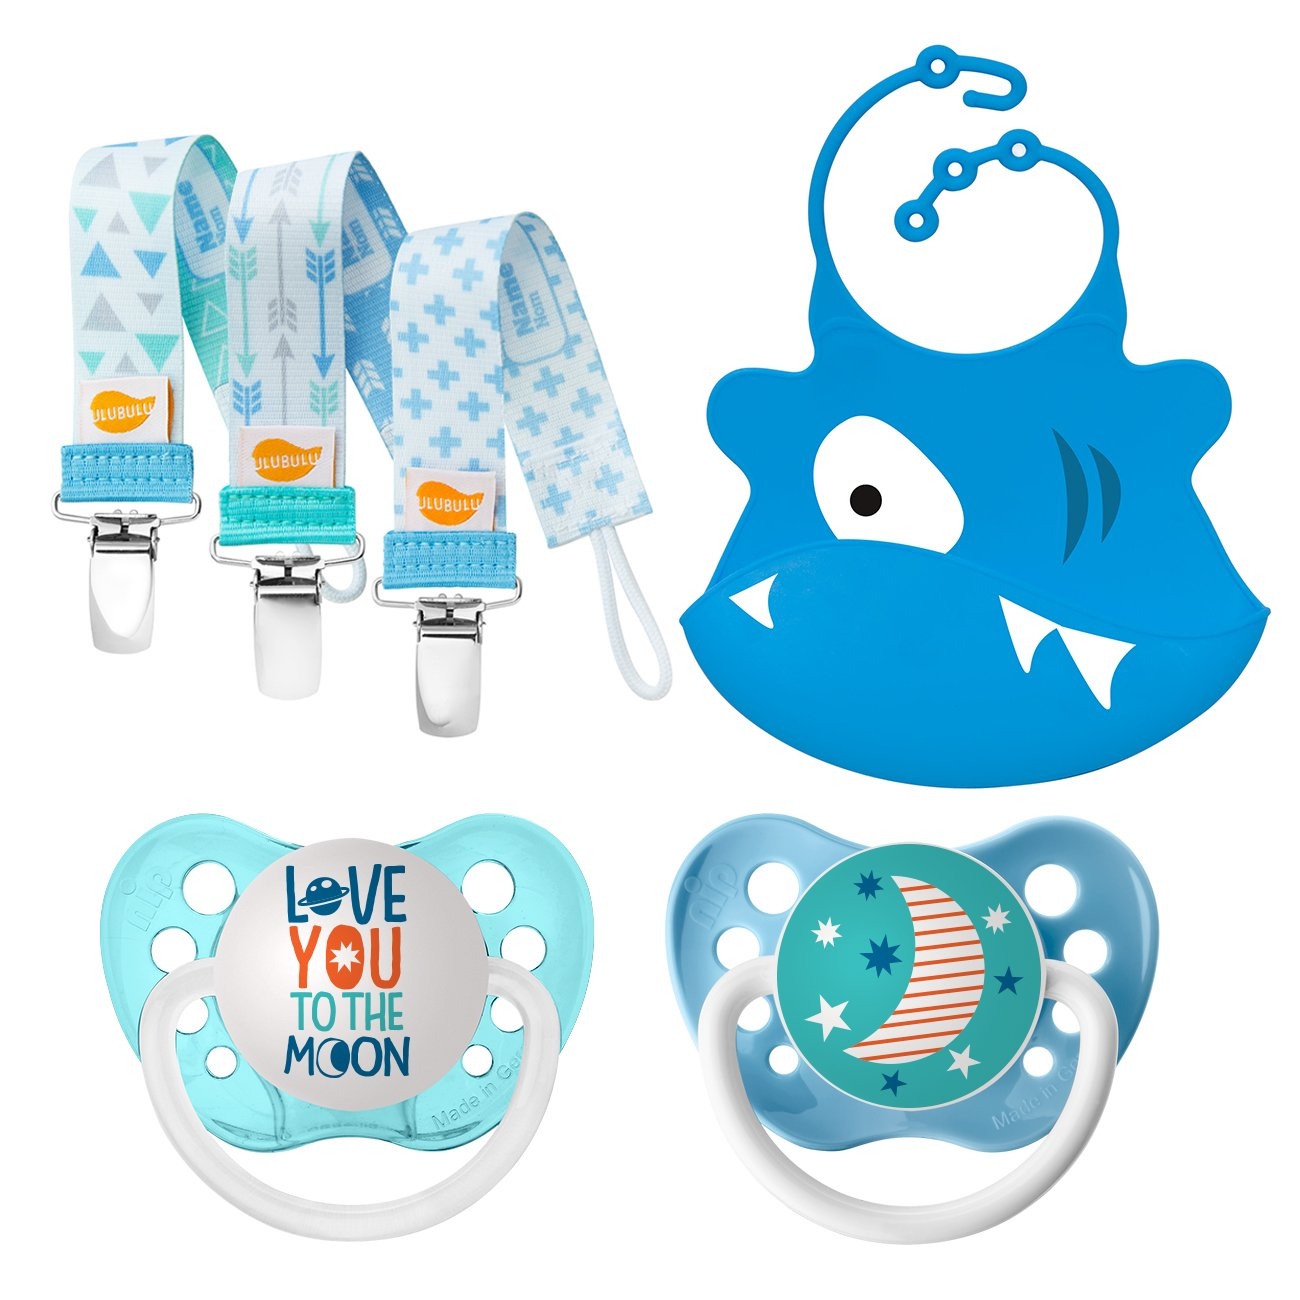 Ulubulu Love You to The Moon and Teal Moon Designs/Boy Pacifier Clip Combo/Silicone Bib, 0-6 Months by Ulubulu